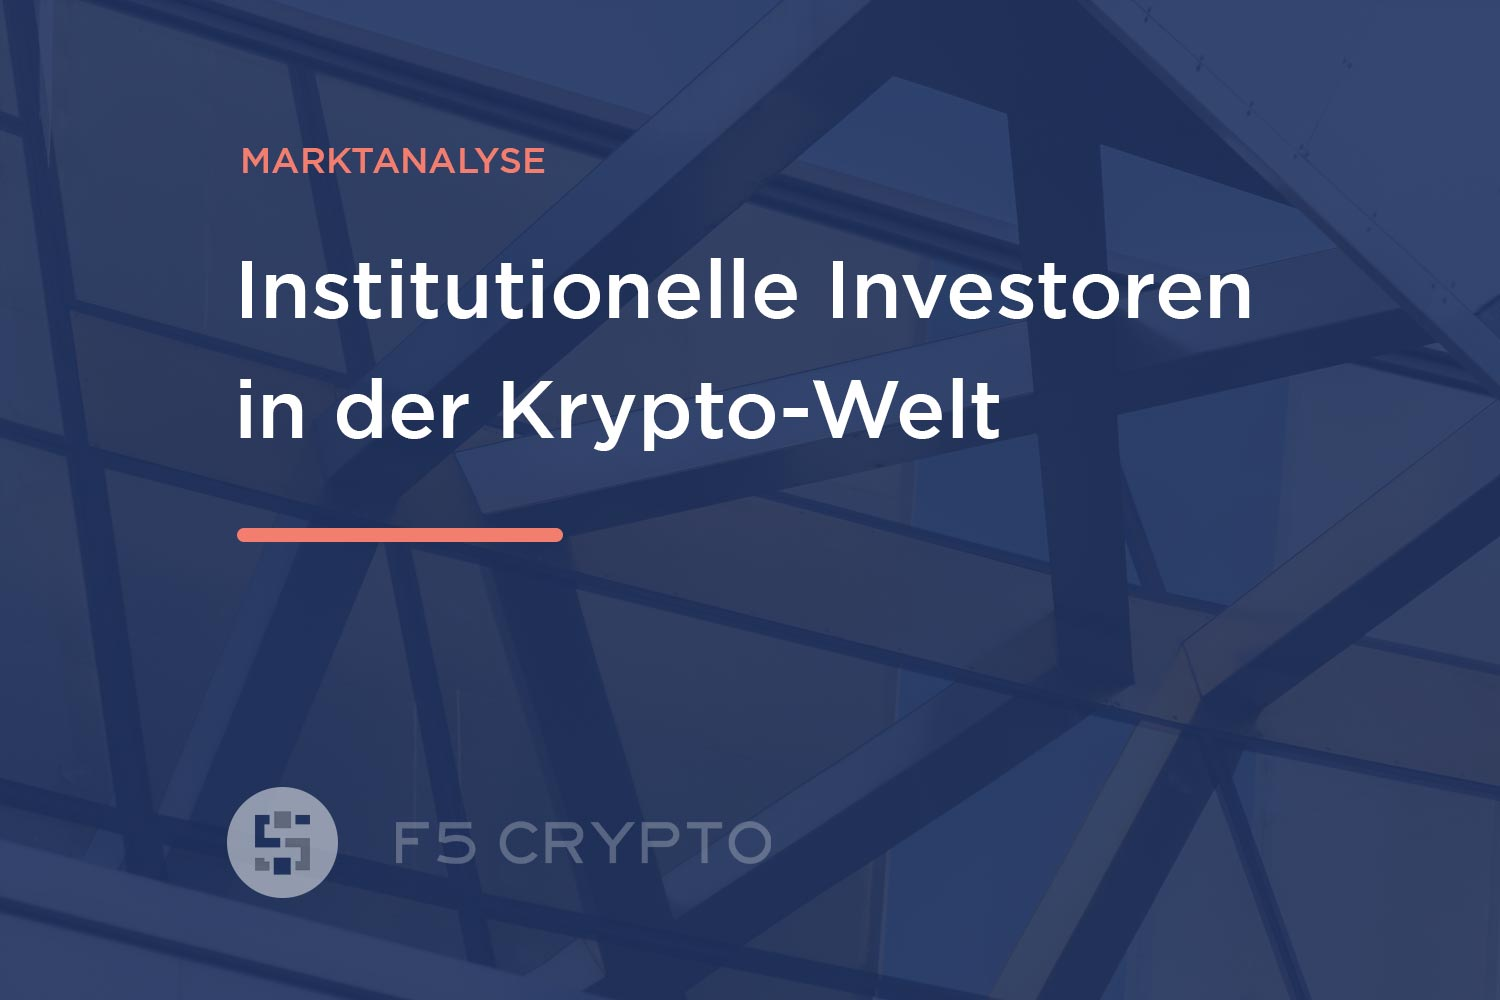 Institutionelle Investoren in der Krypto-Welt